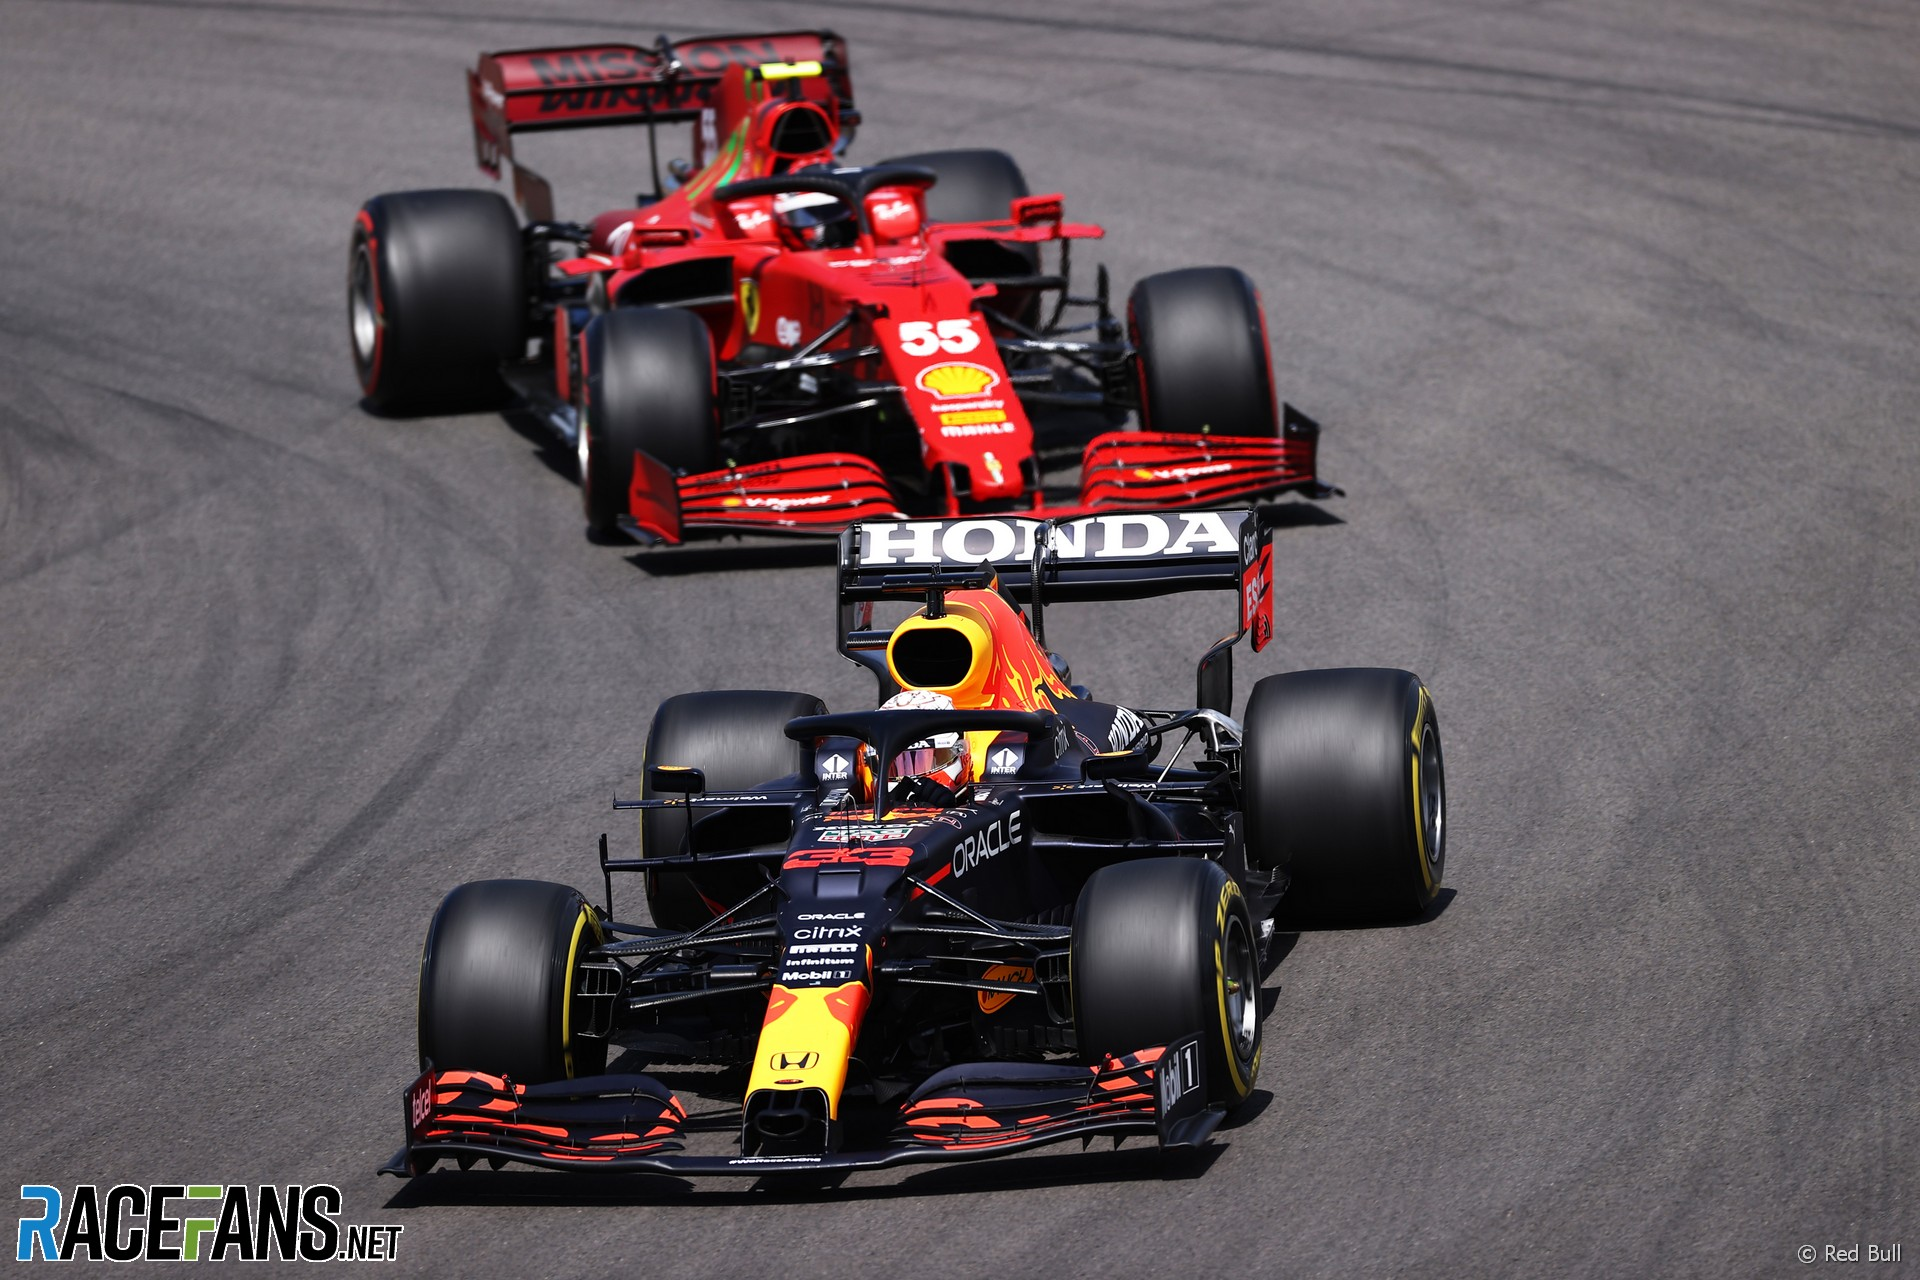 Max Verstappen, Red Bull, Autodromo do Algarve, 2021